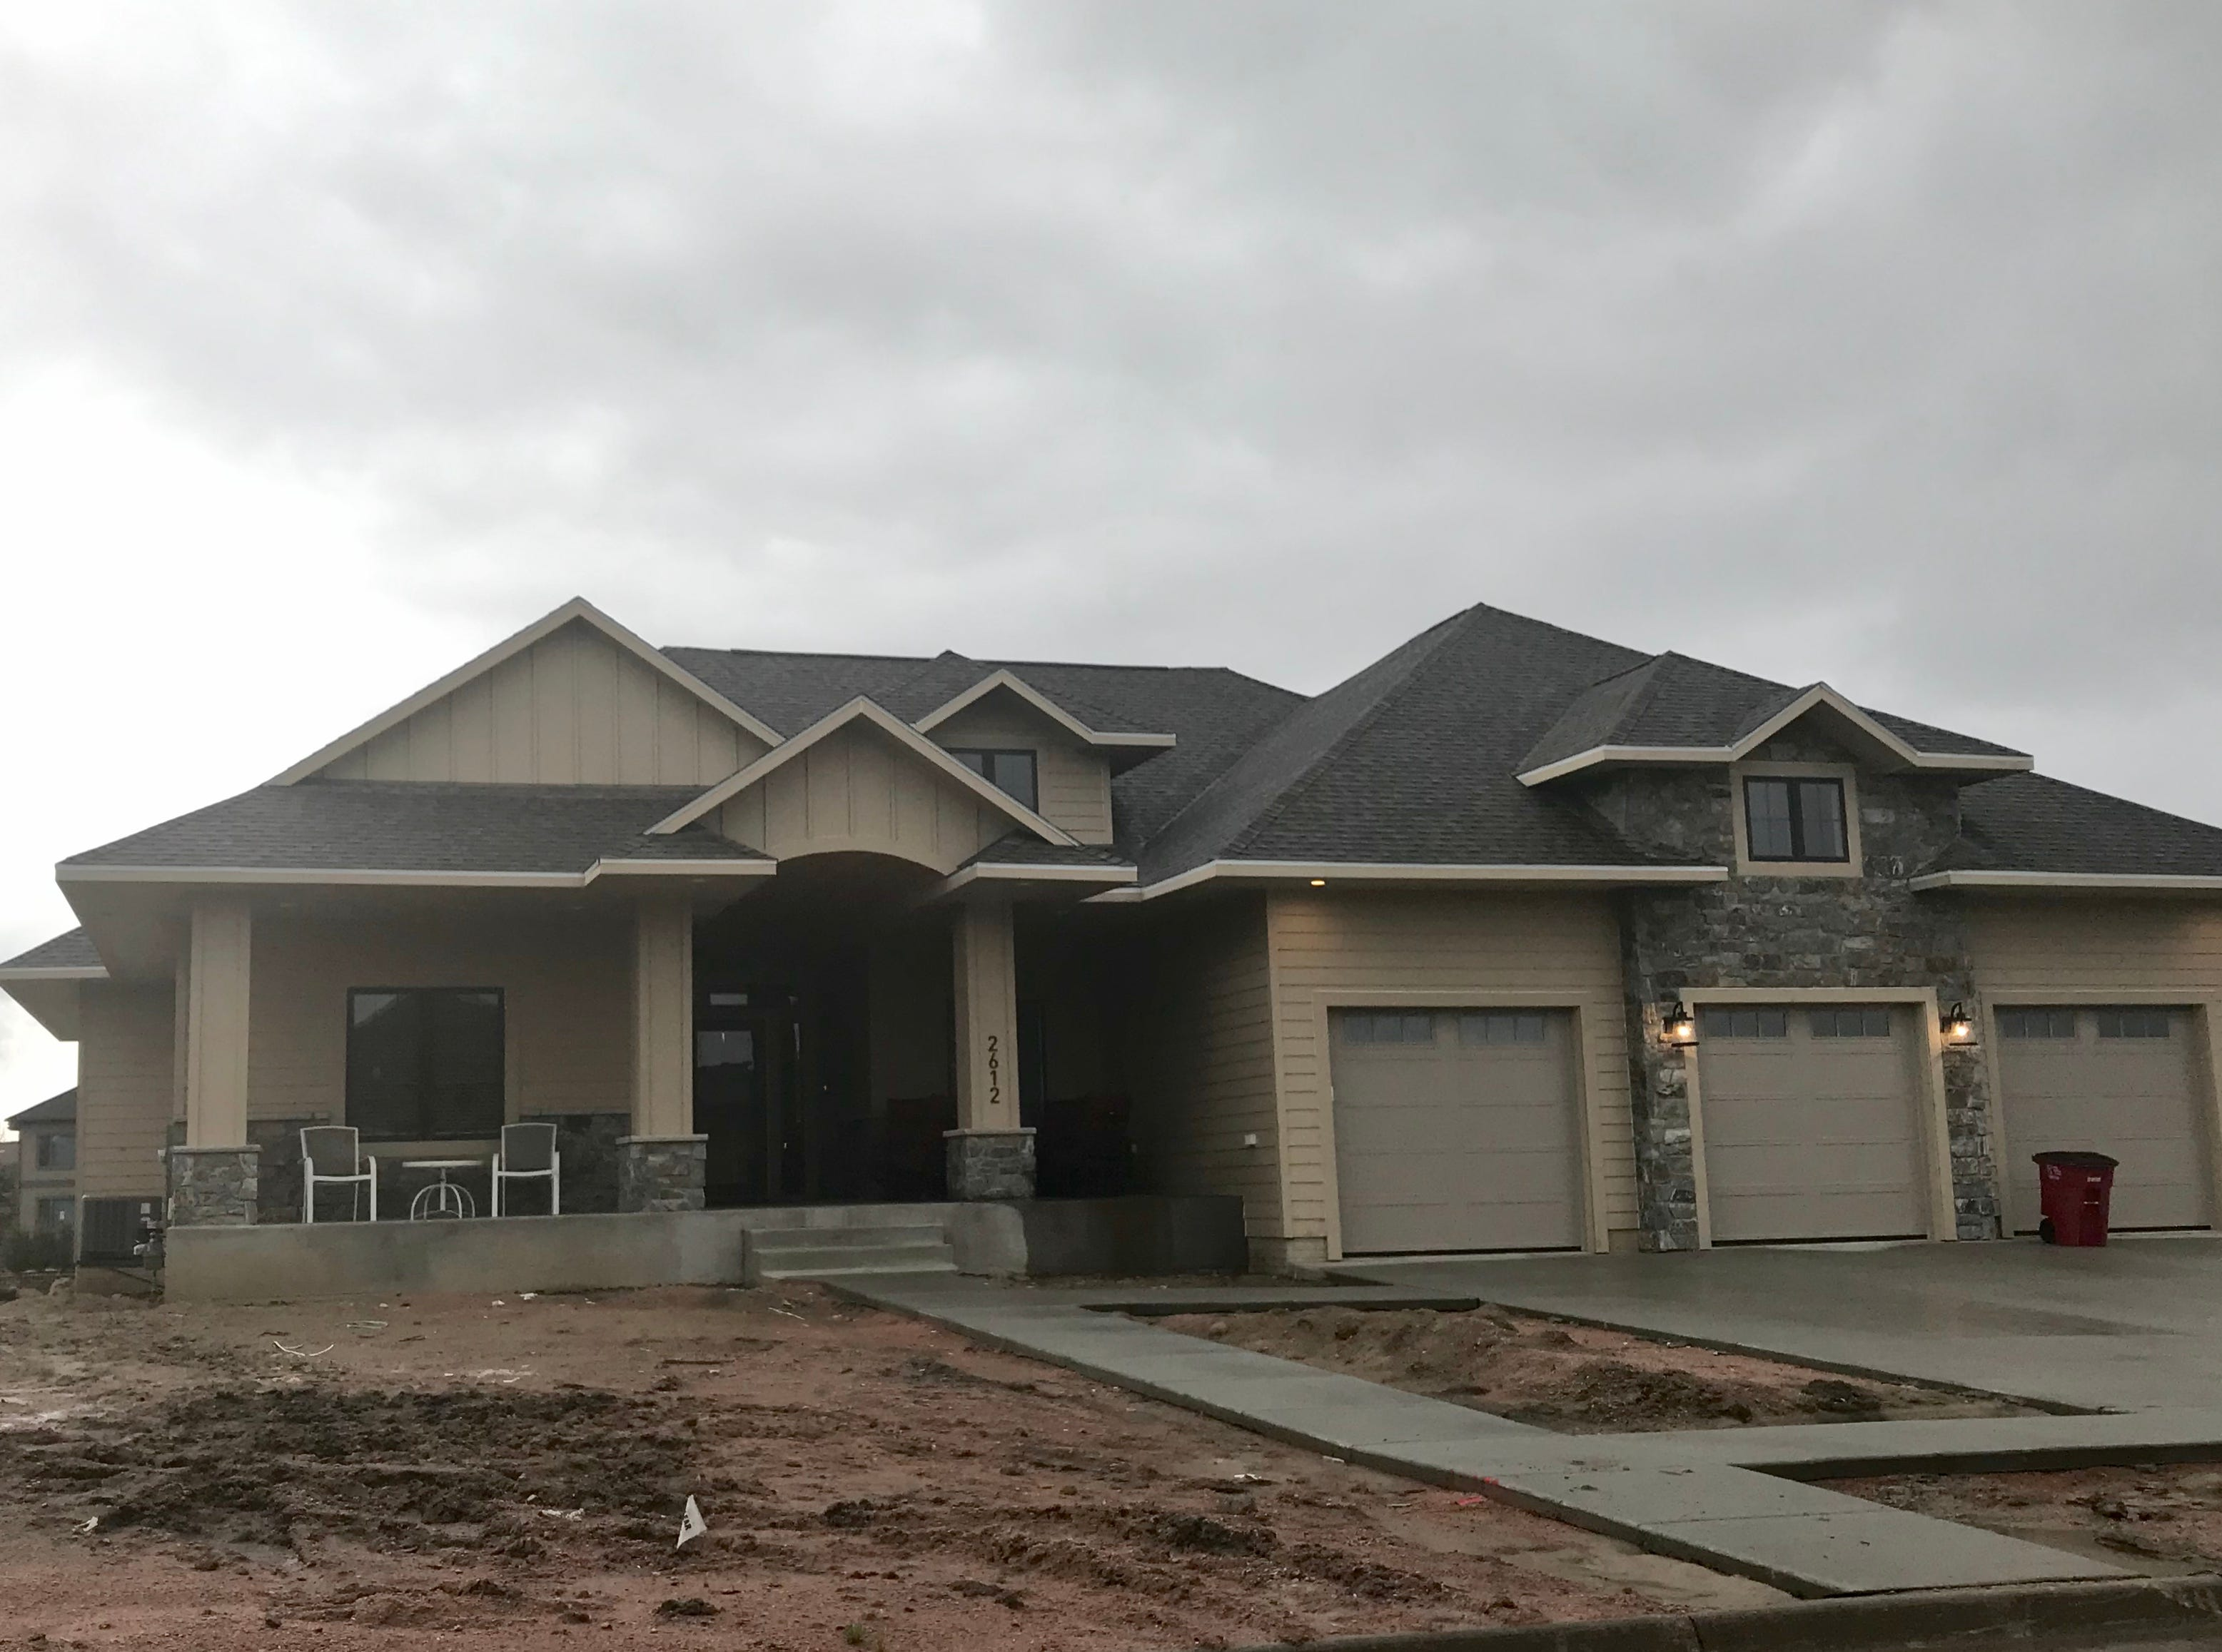 The home at 2612 W. Bitterroot St. in Sioux Falls sold for $751,780, topping our home sales report for the week of March 11.